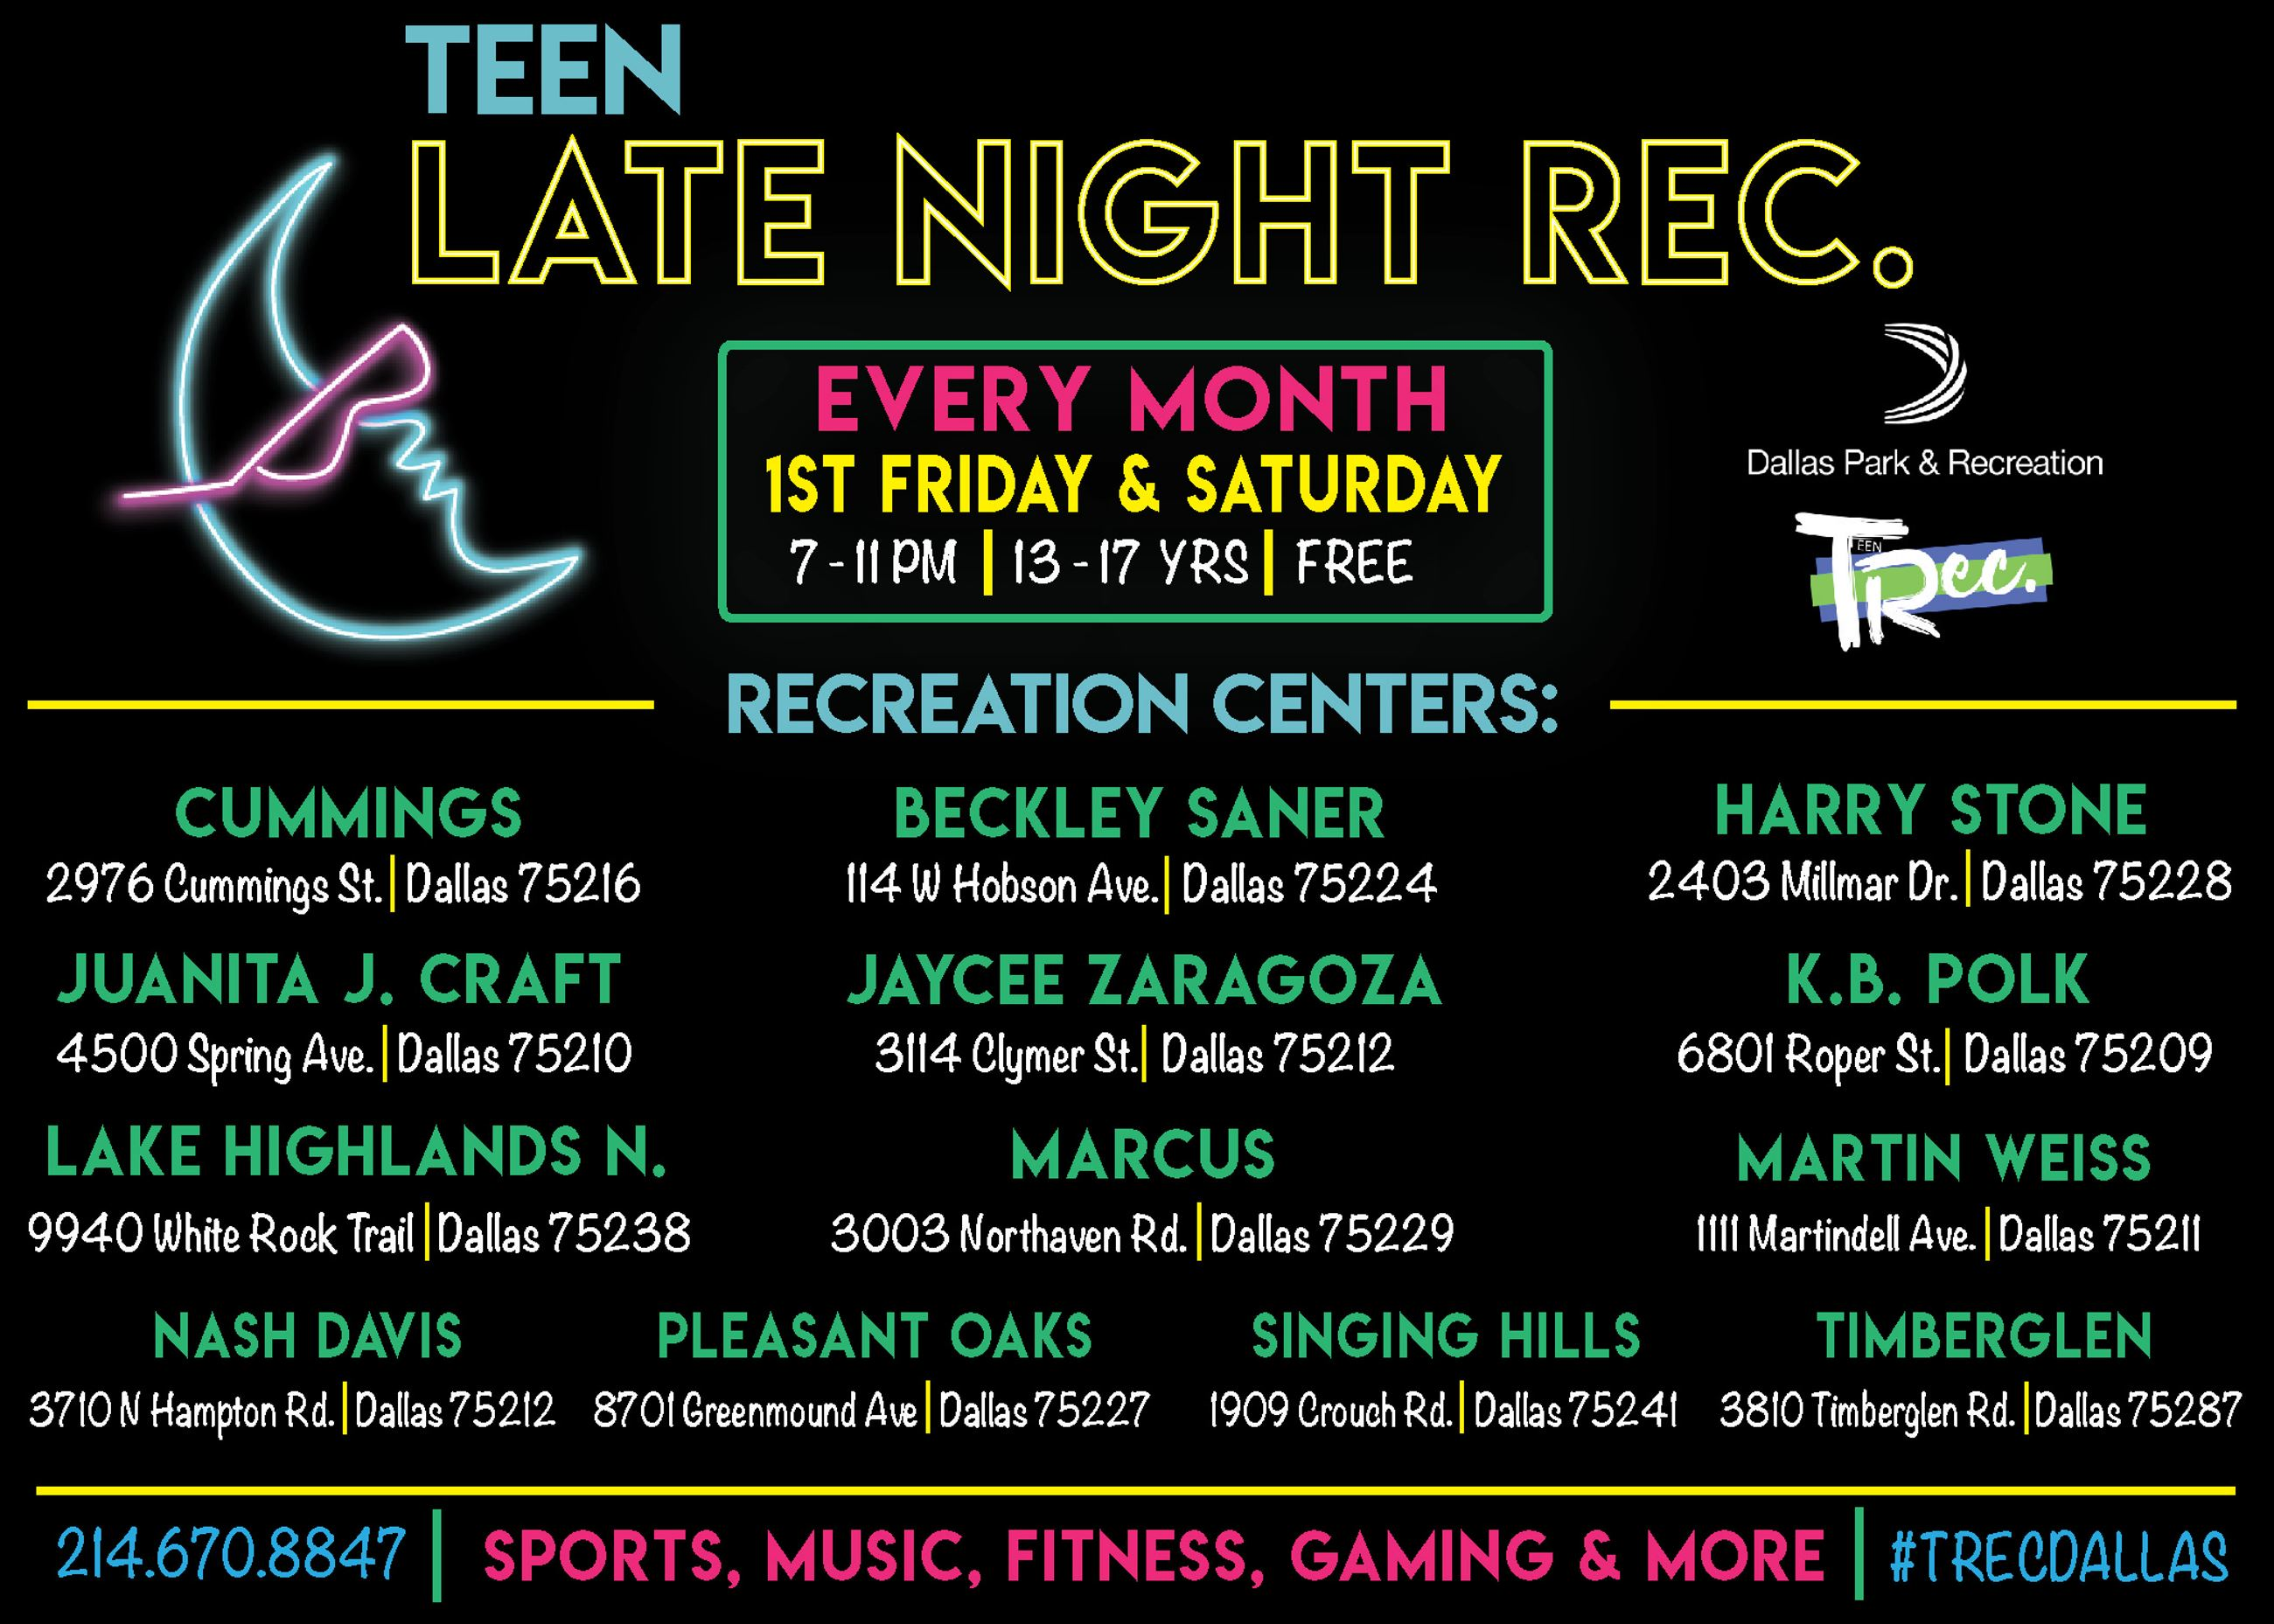 Late Night Rec Flyer